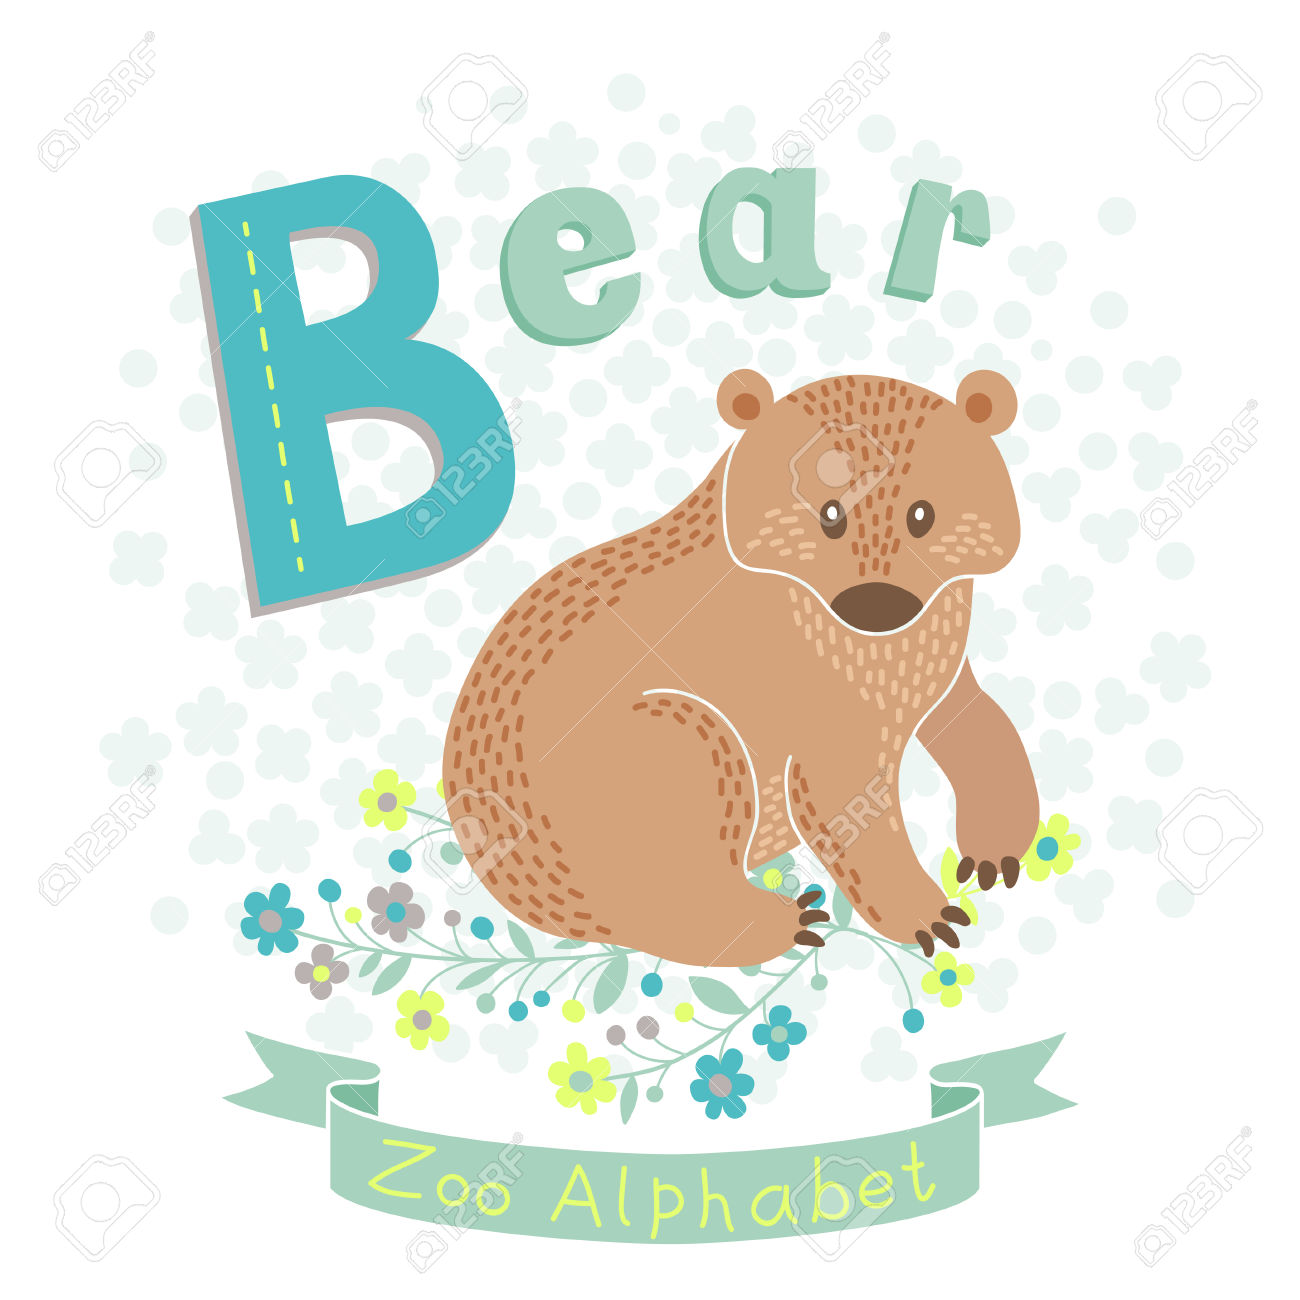 Letter b clipart bear graphic black and white stock Letter B - Bear. Alphabet With Cute Animals. Vector Illustration ... graphic black and white stock